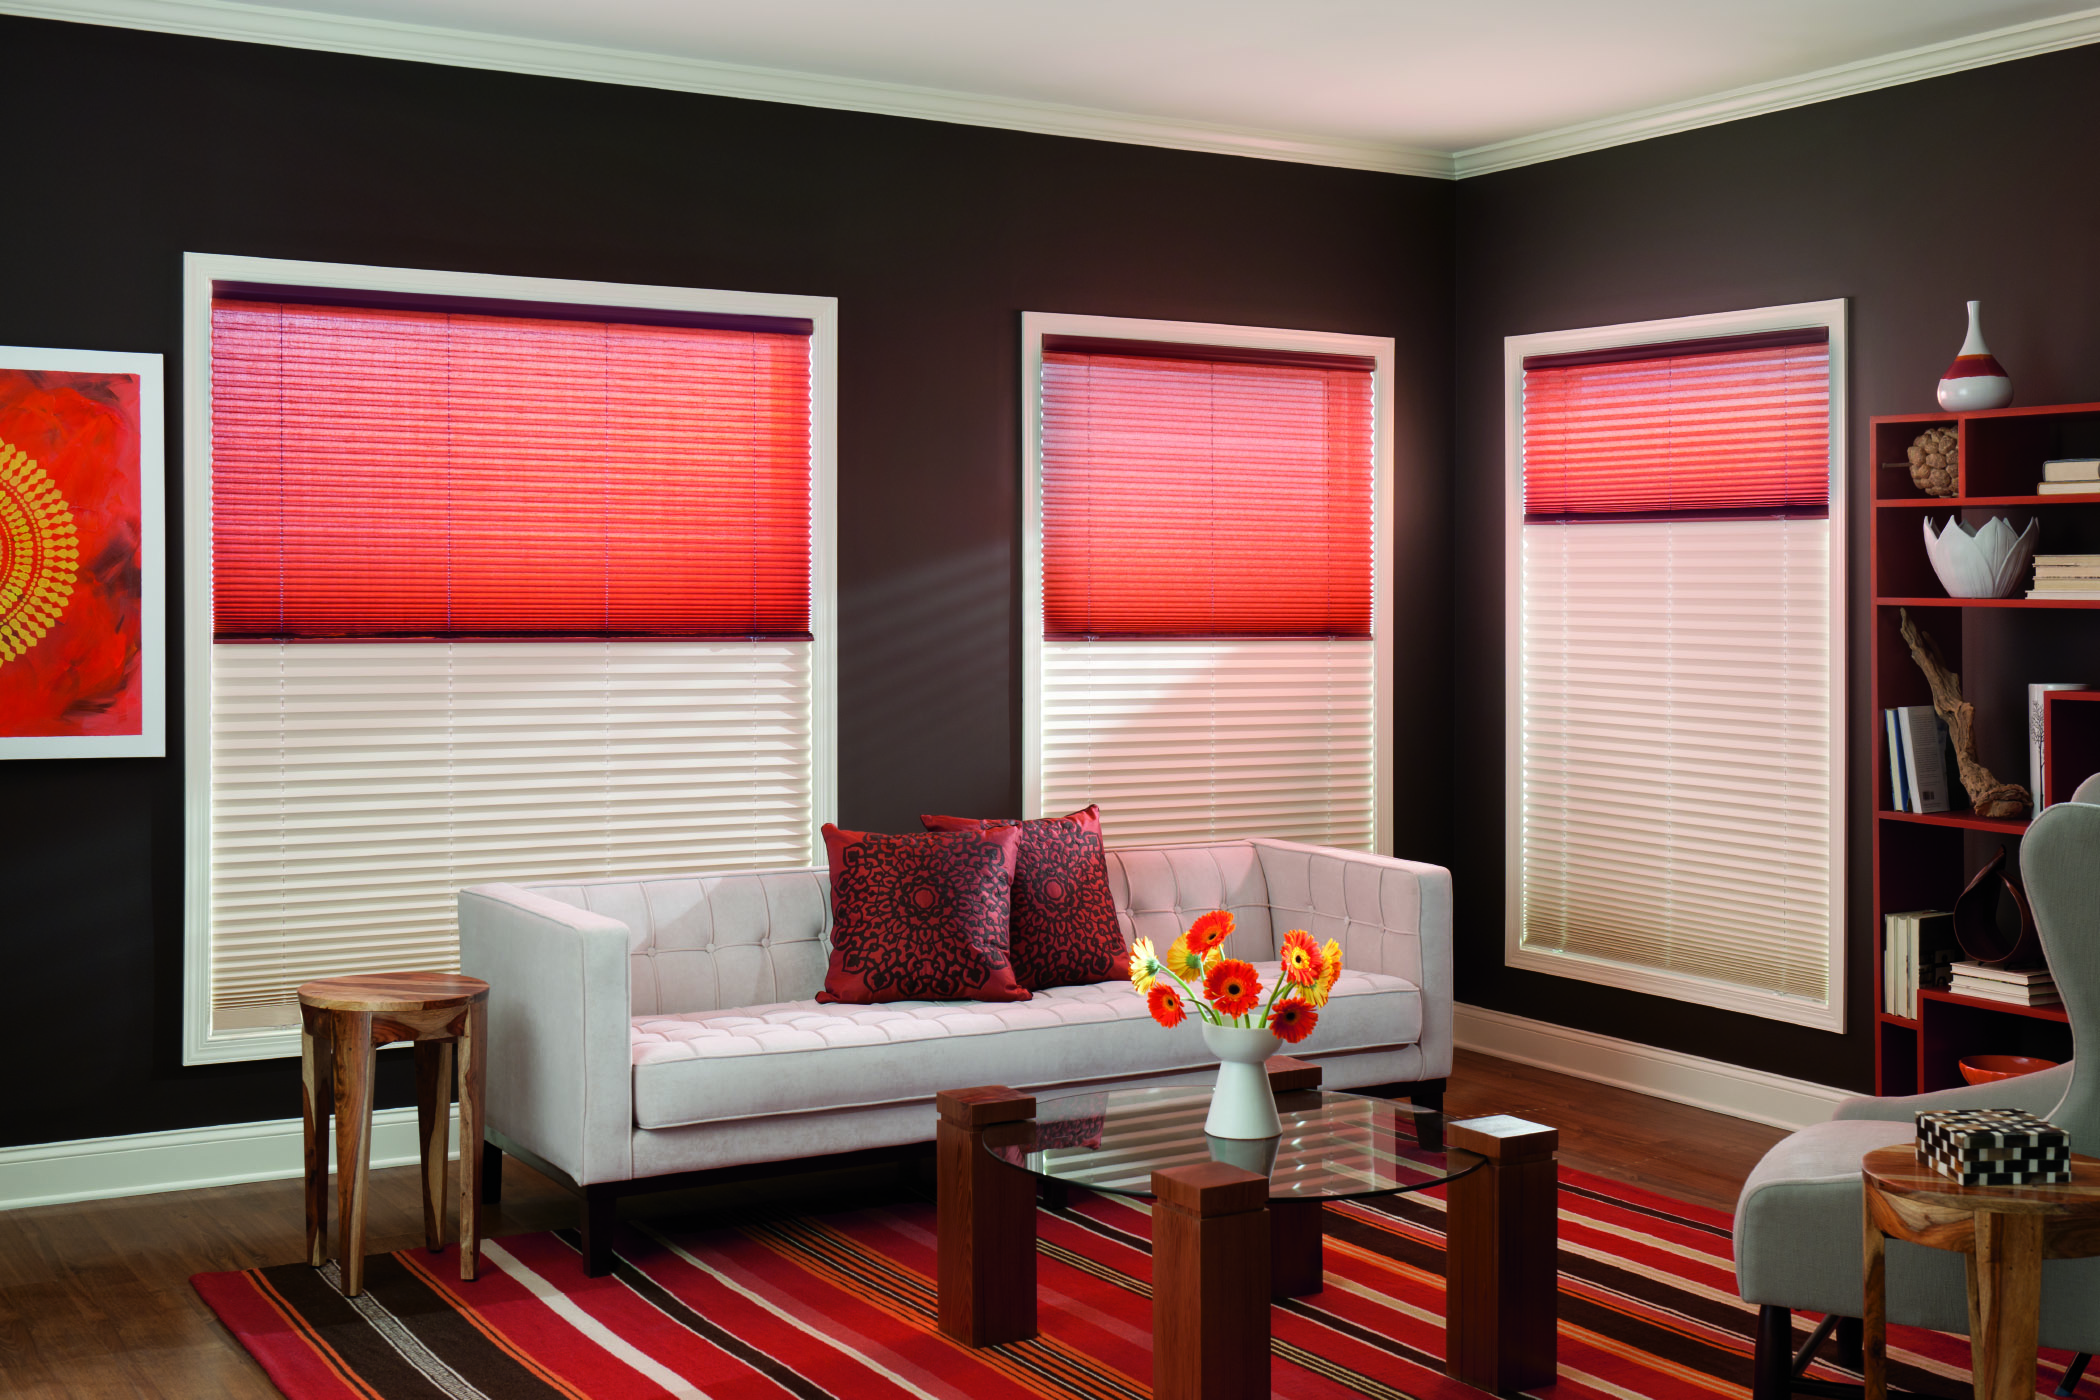 Roman and Roller shades